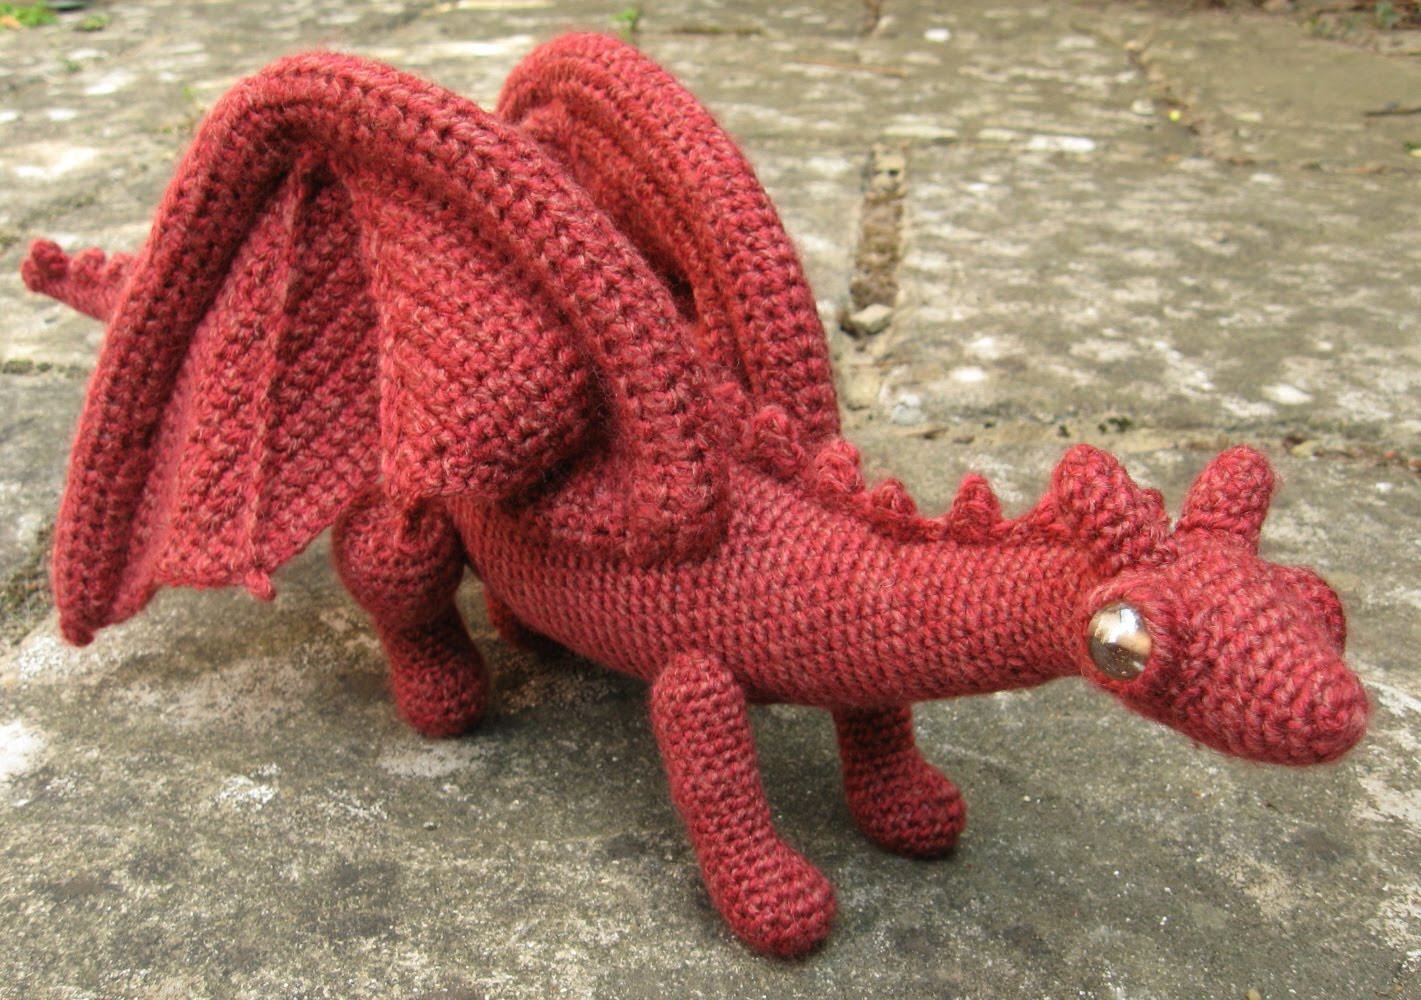 Free Crochet Dragon Pattern Lovely Lucyravenscar Crochet Creatures Dragonet Pattern Of Amazing 50 Images Free Crochet Dragon Pattern